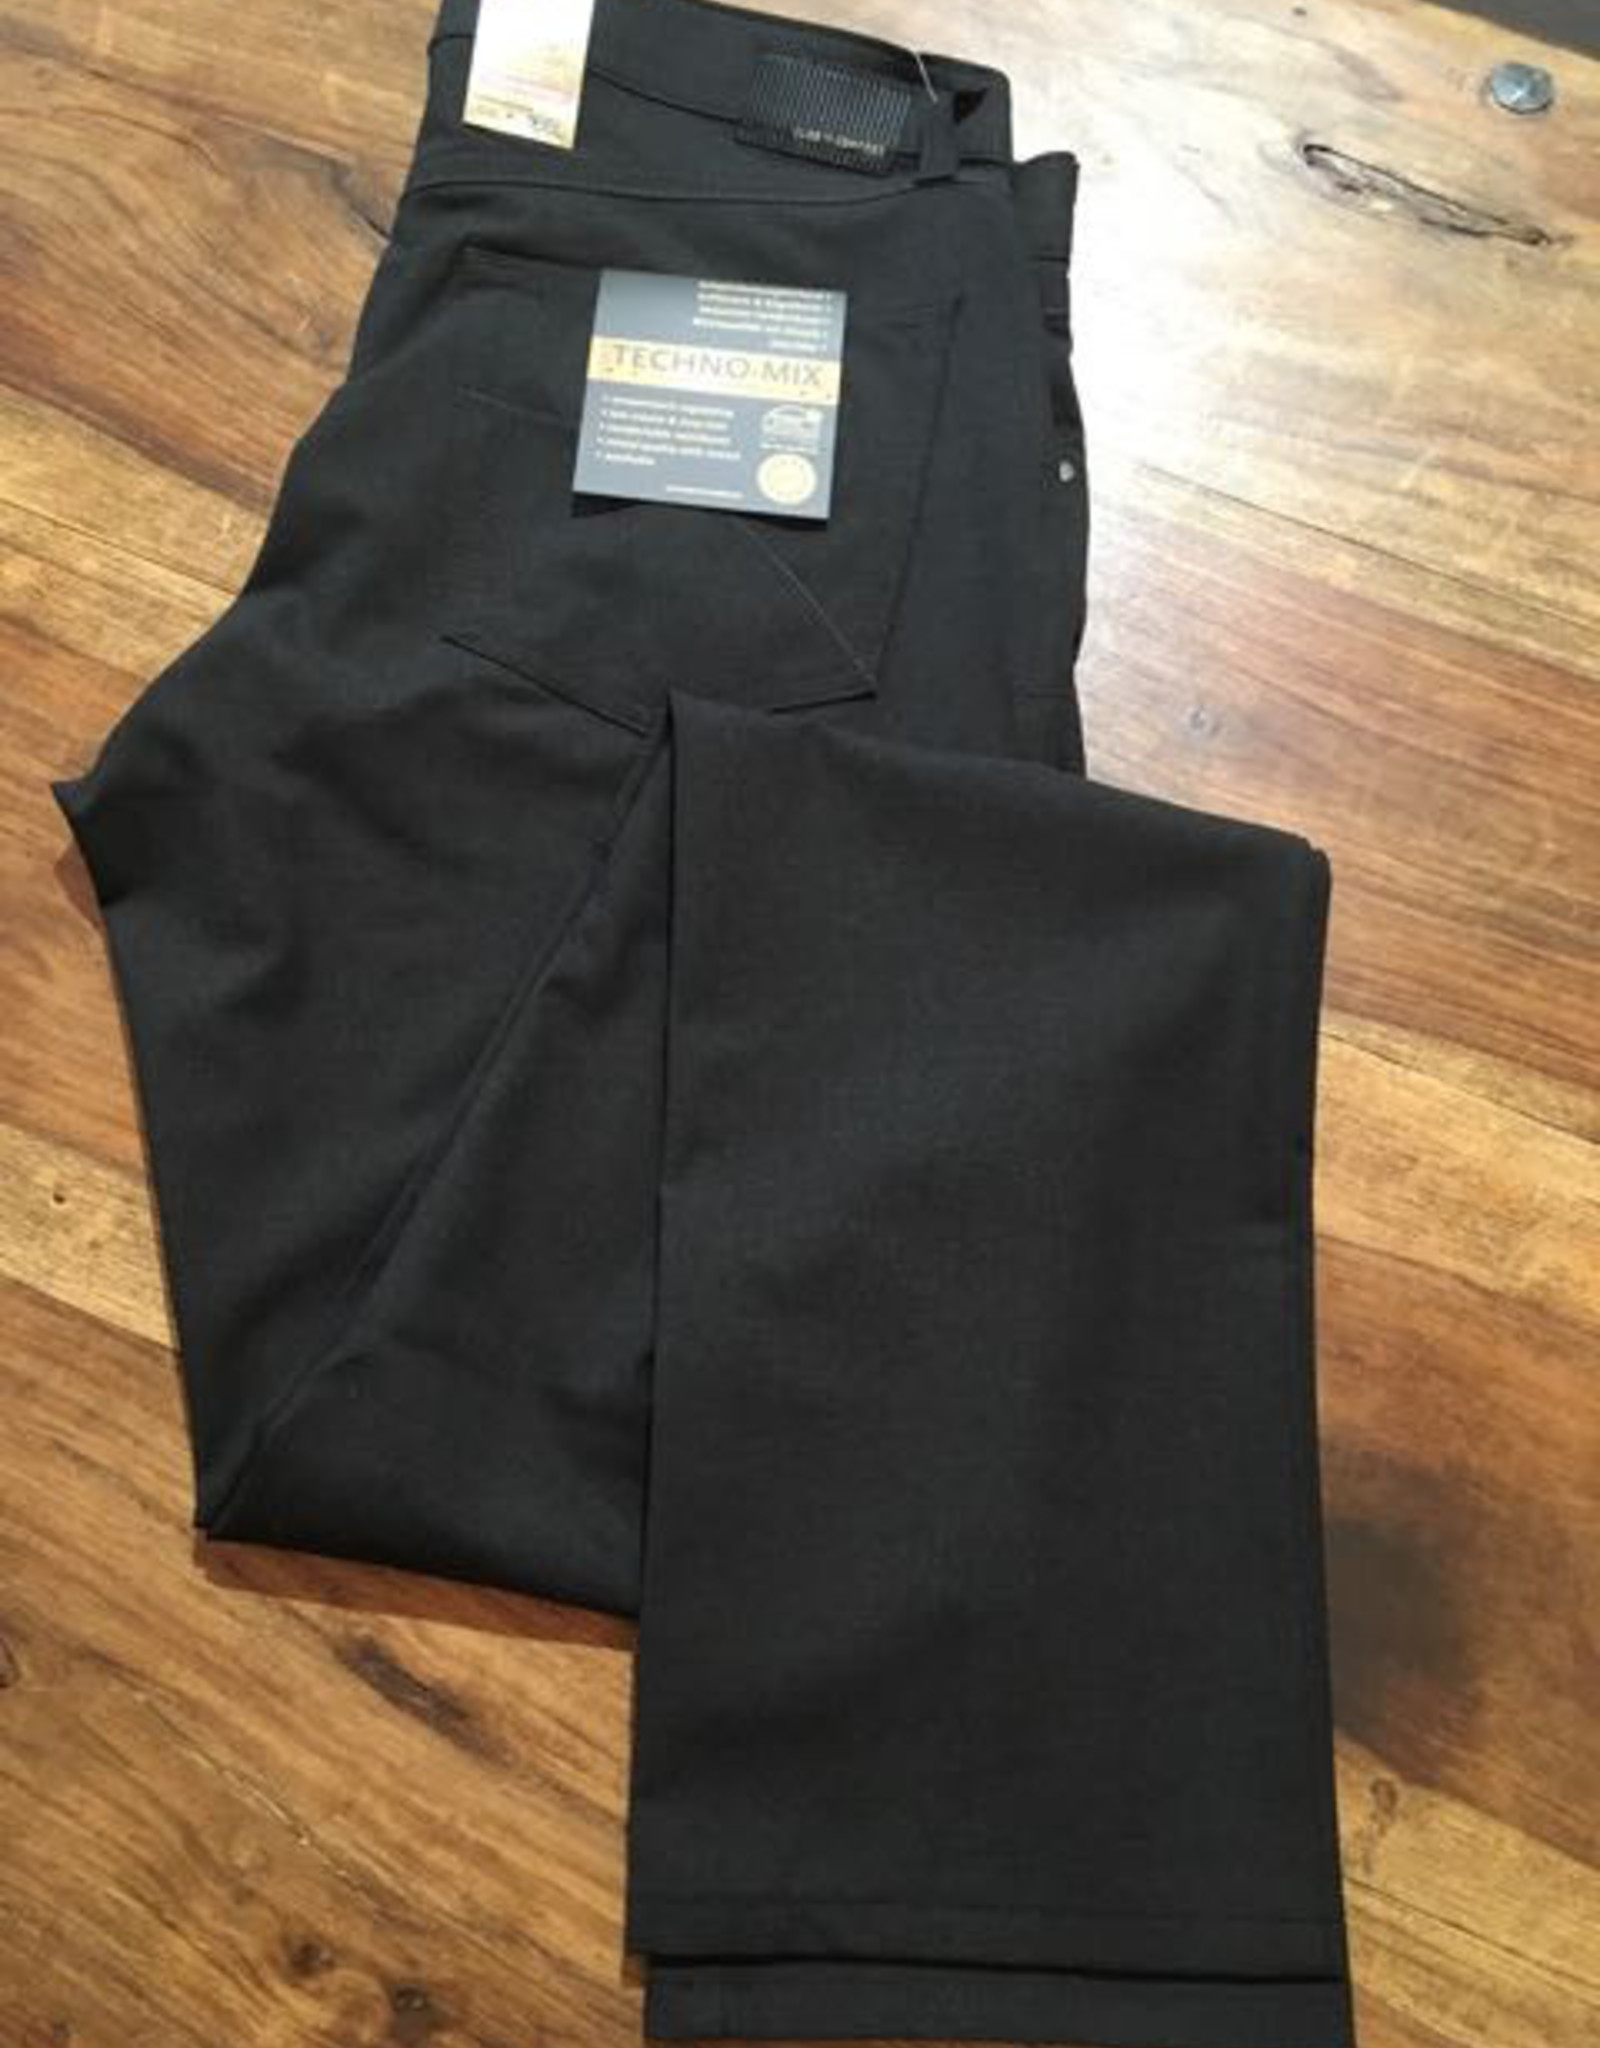 Club of Comfort CoC Hose Brad Businesshose Ceramica 5 Pocket Farbecht waschbar Länge:40inches